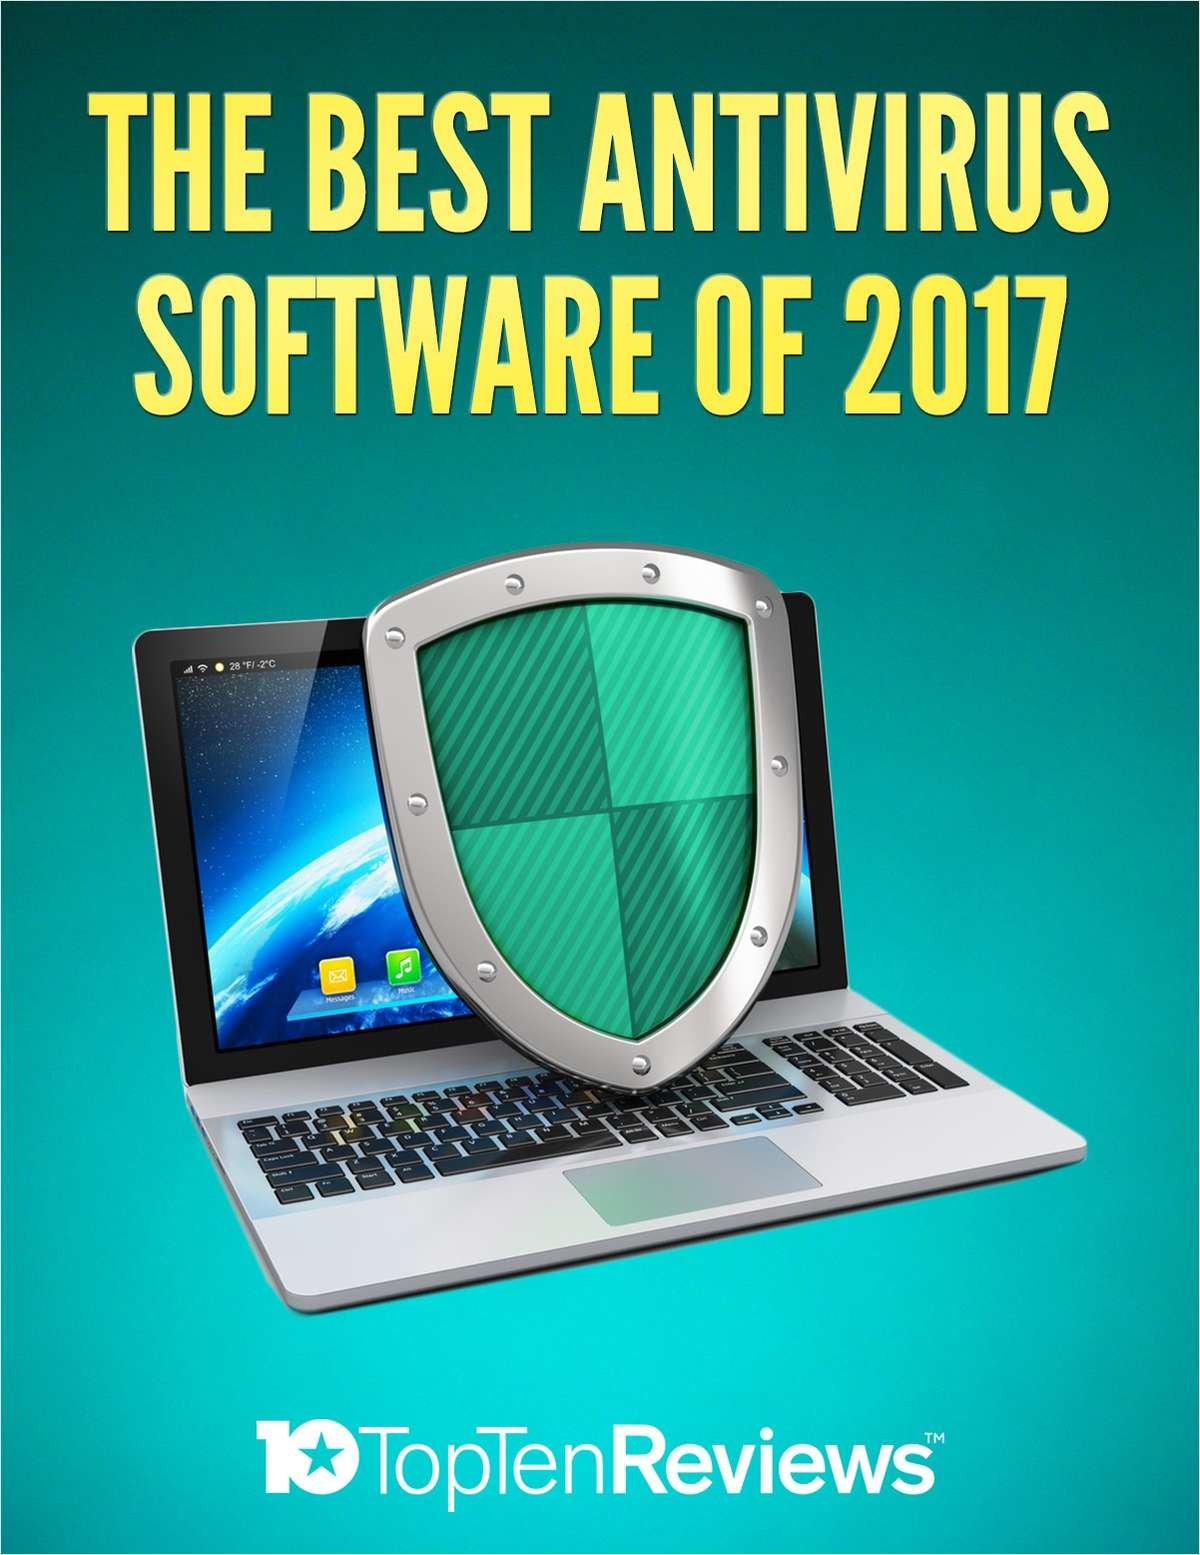 The Best Antivirus Software of 2017